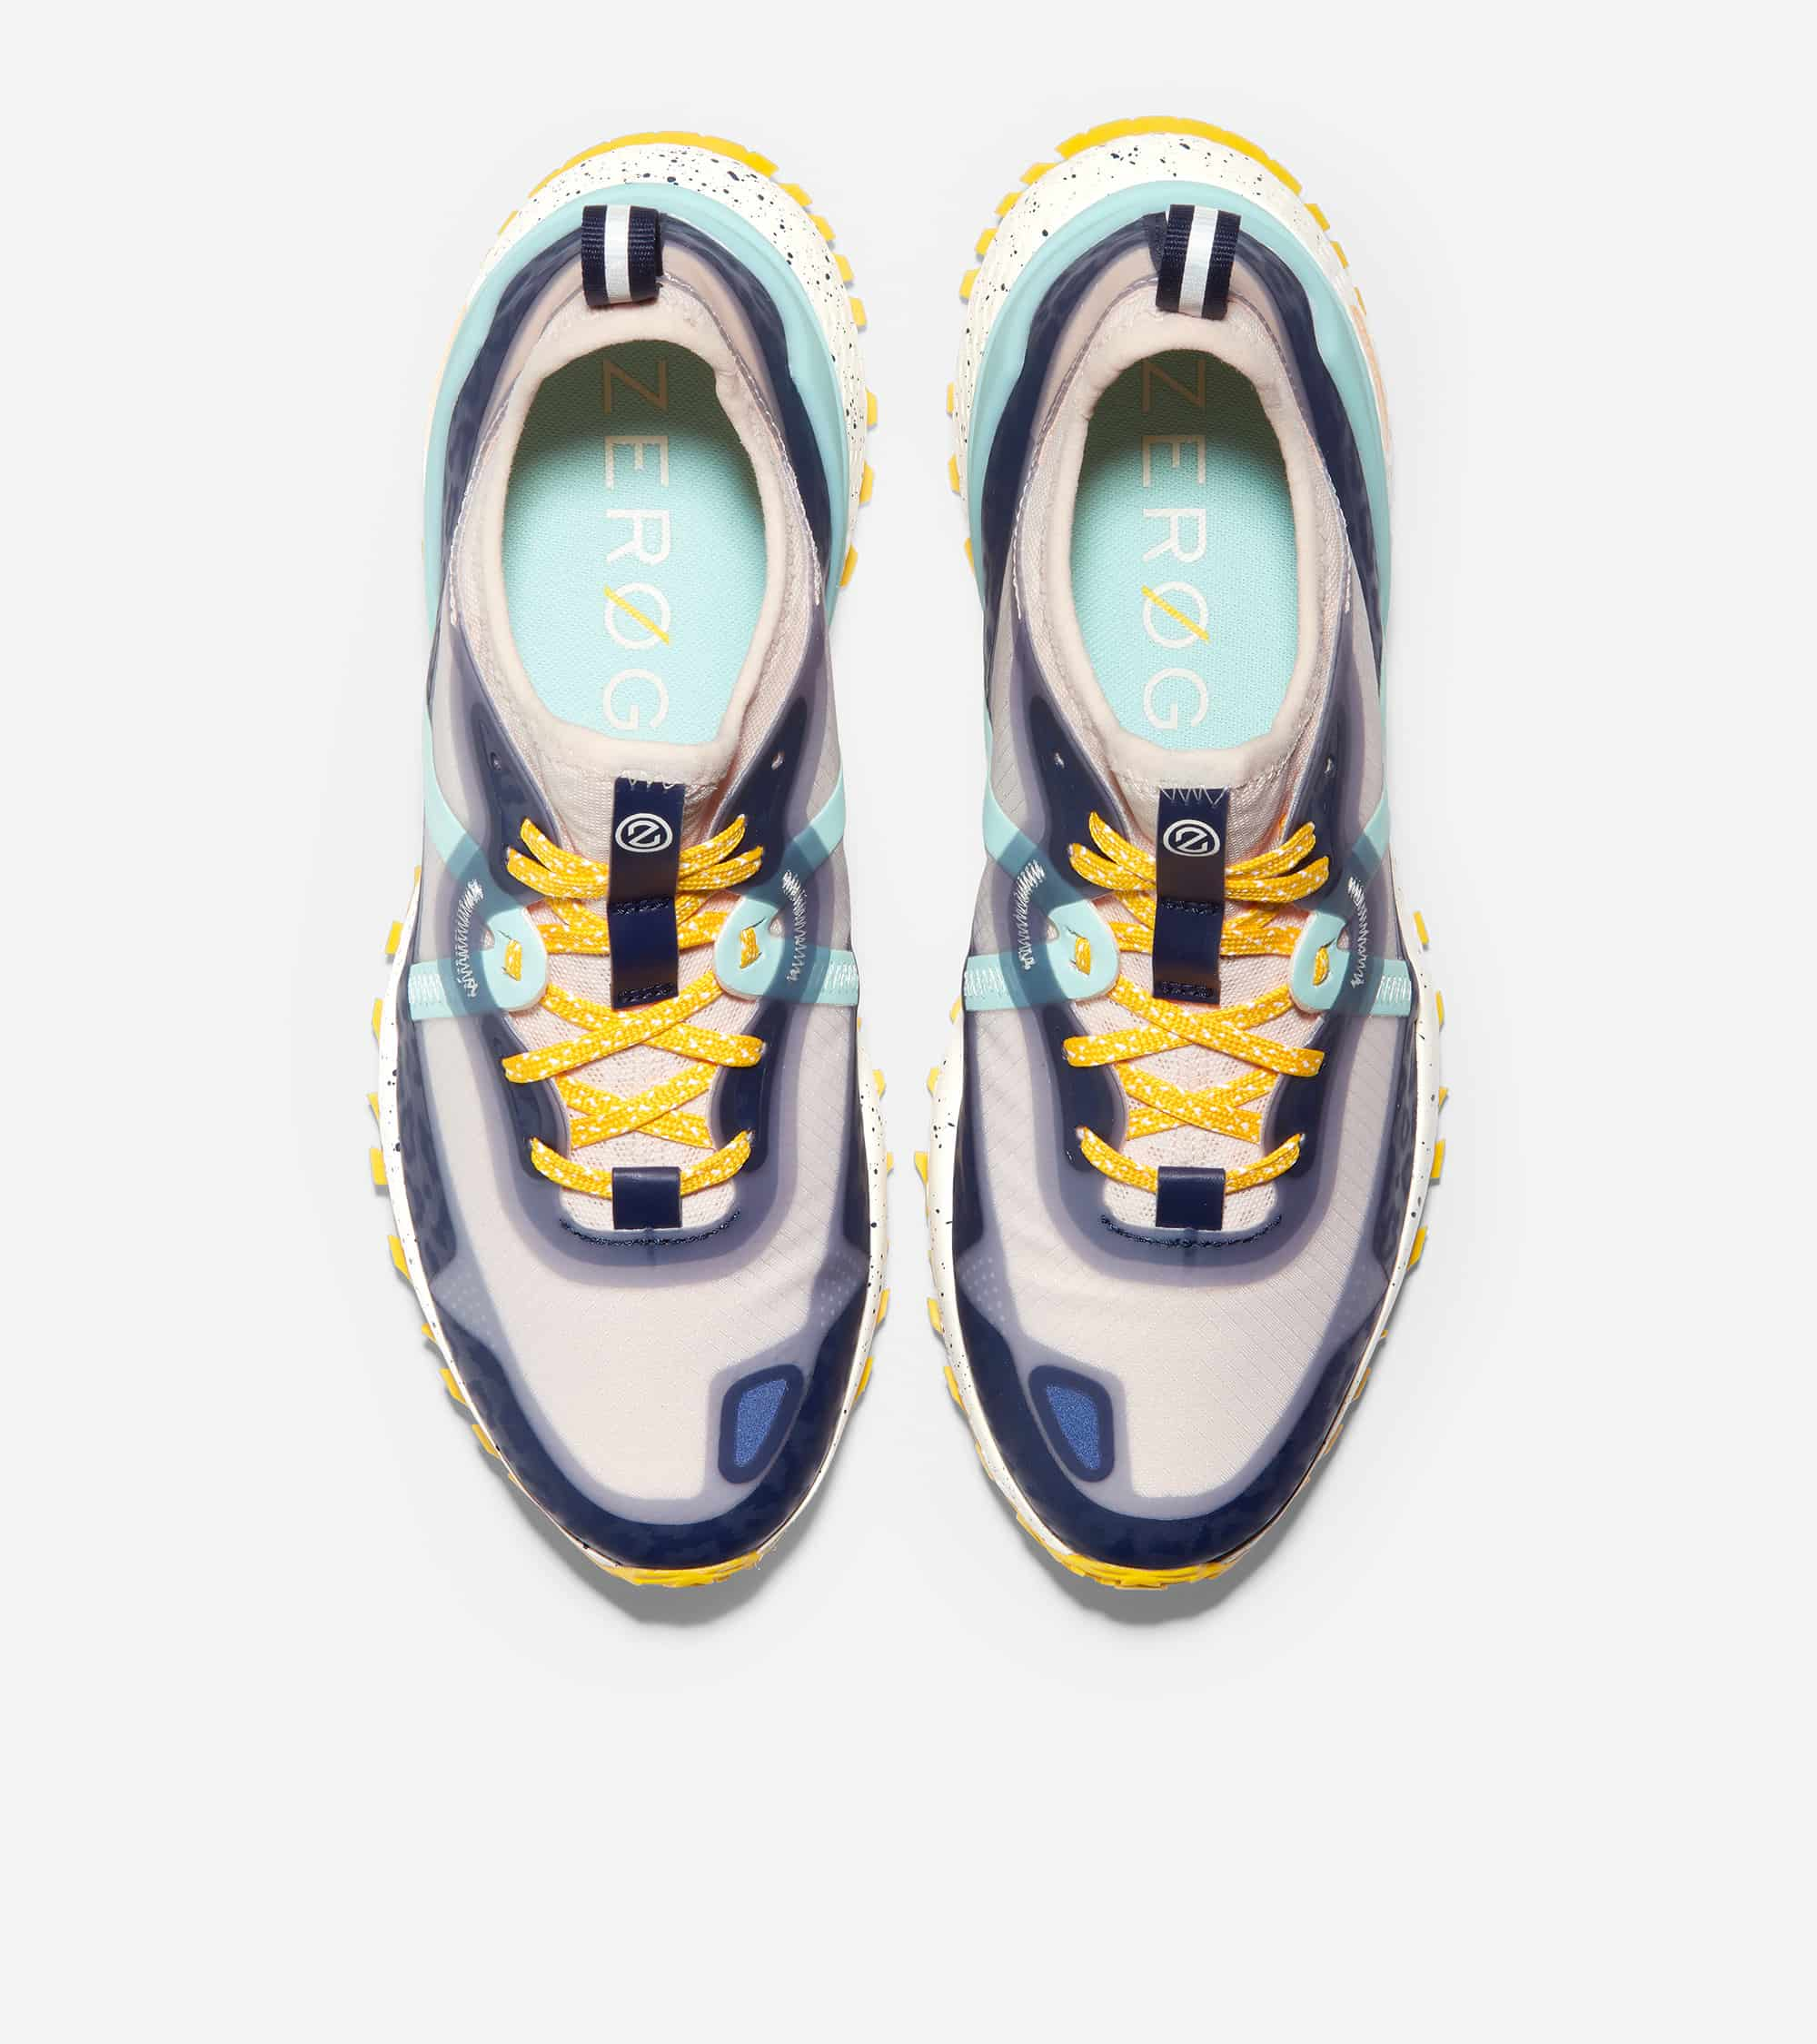 Cole Haan ZERØGRAND Overtake All Terrain Wr Marine Blue Emboss Wr/ Blue Tint/ Golden Rod/ Ivory With Marine Blue Speckles